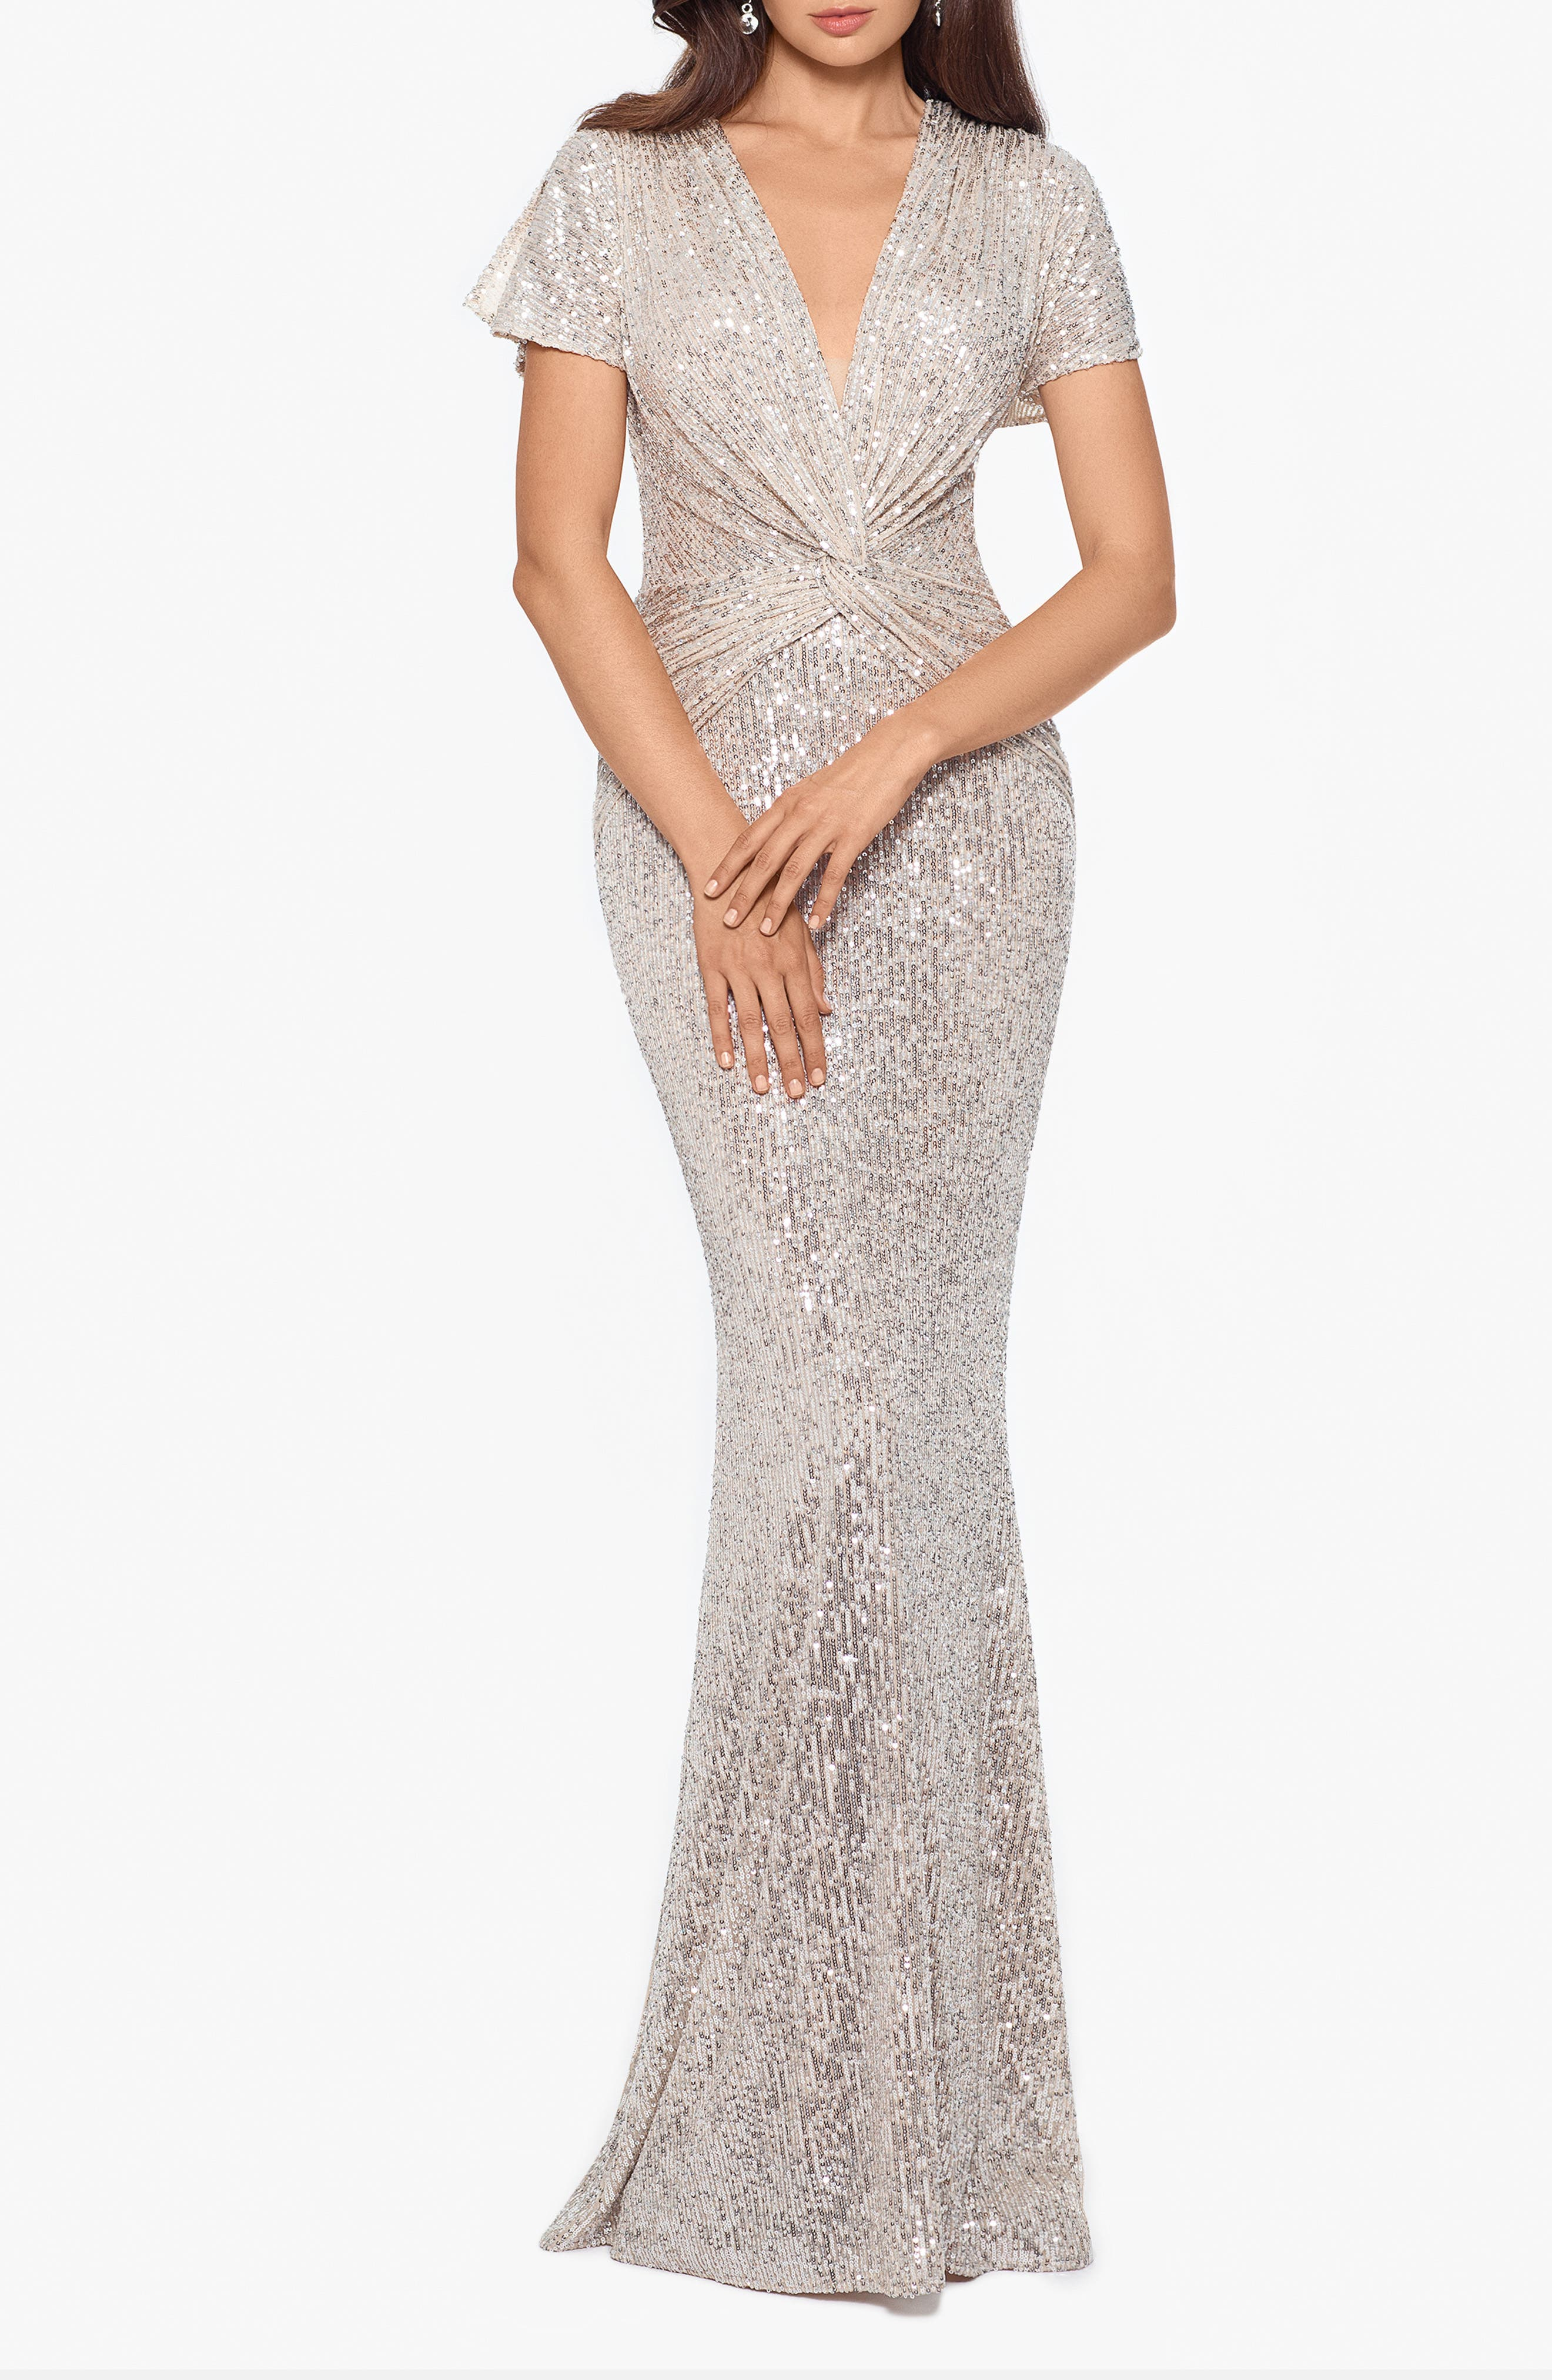 Dolman sleeves gracefully flow into the twist-front waist on this glittering mermaid gown, creating a sleek silhouette and a seductively plunging neckline. Style Name: Xscape Sequin Twist Front Mermaid Gown. Style Number: 5954046. Available in stores.